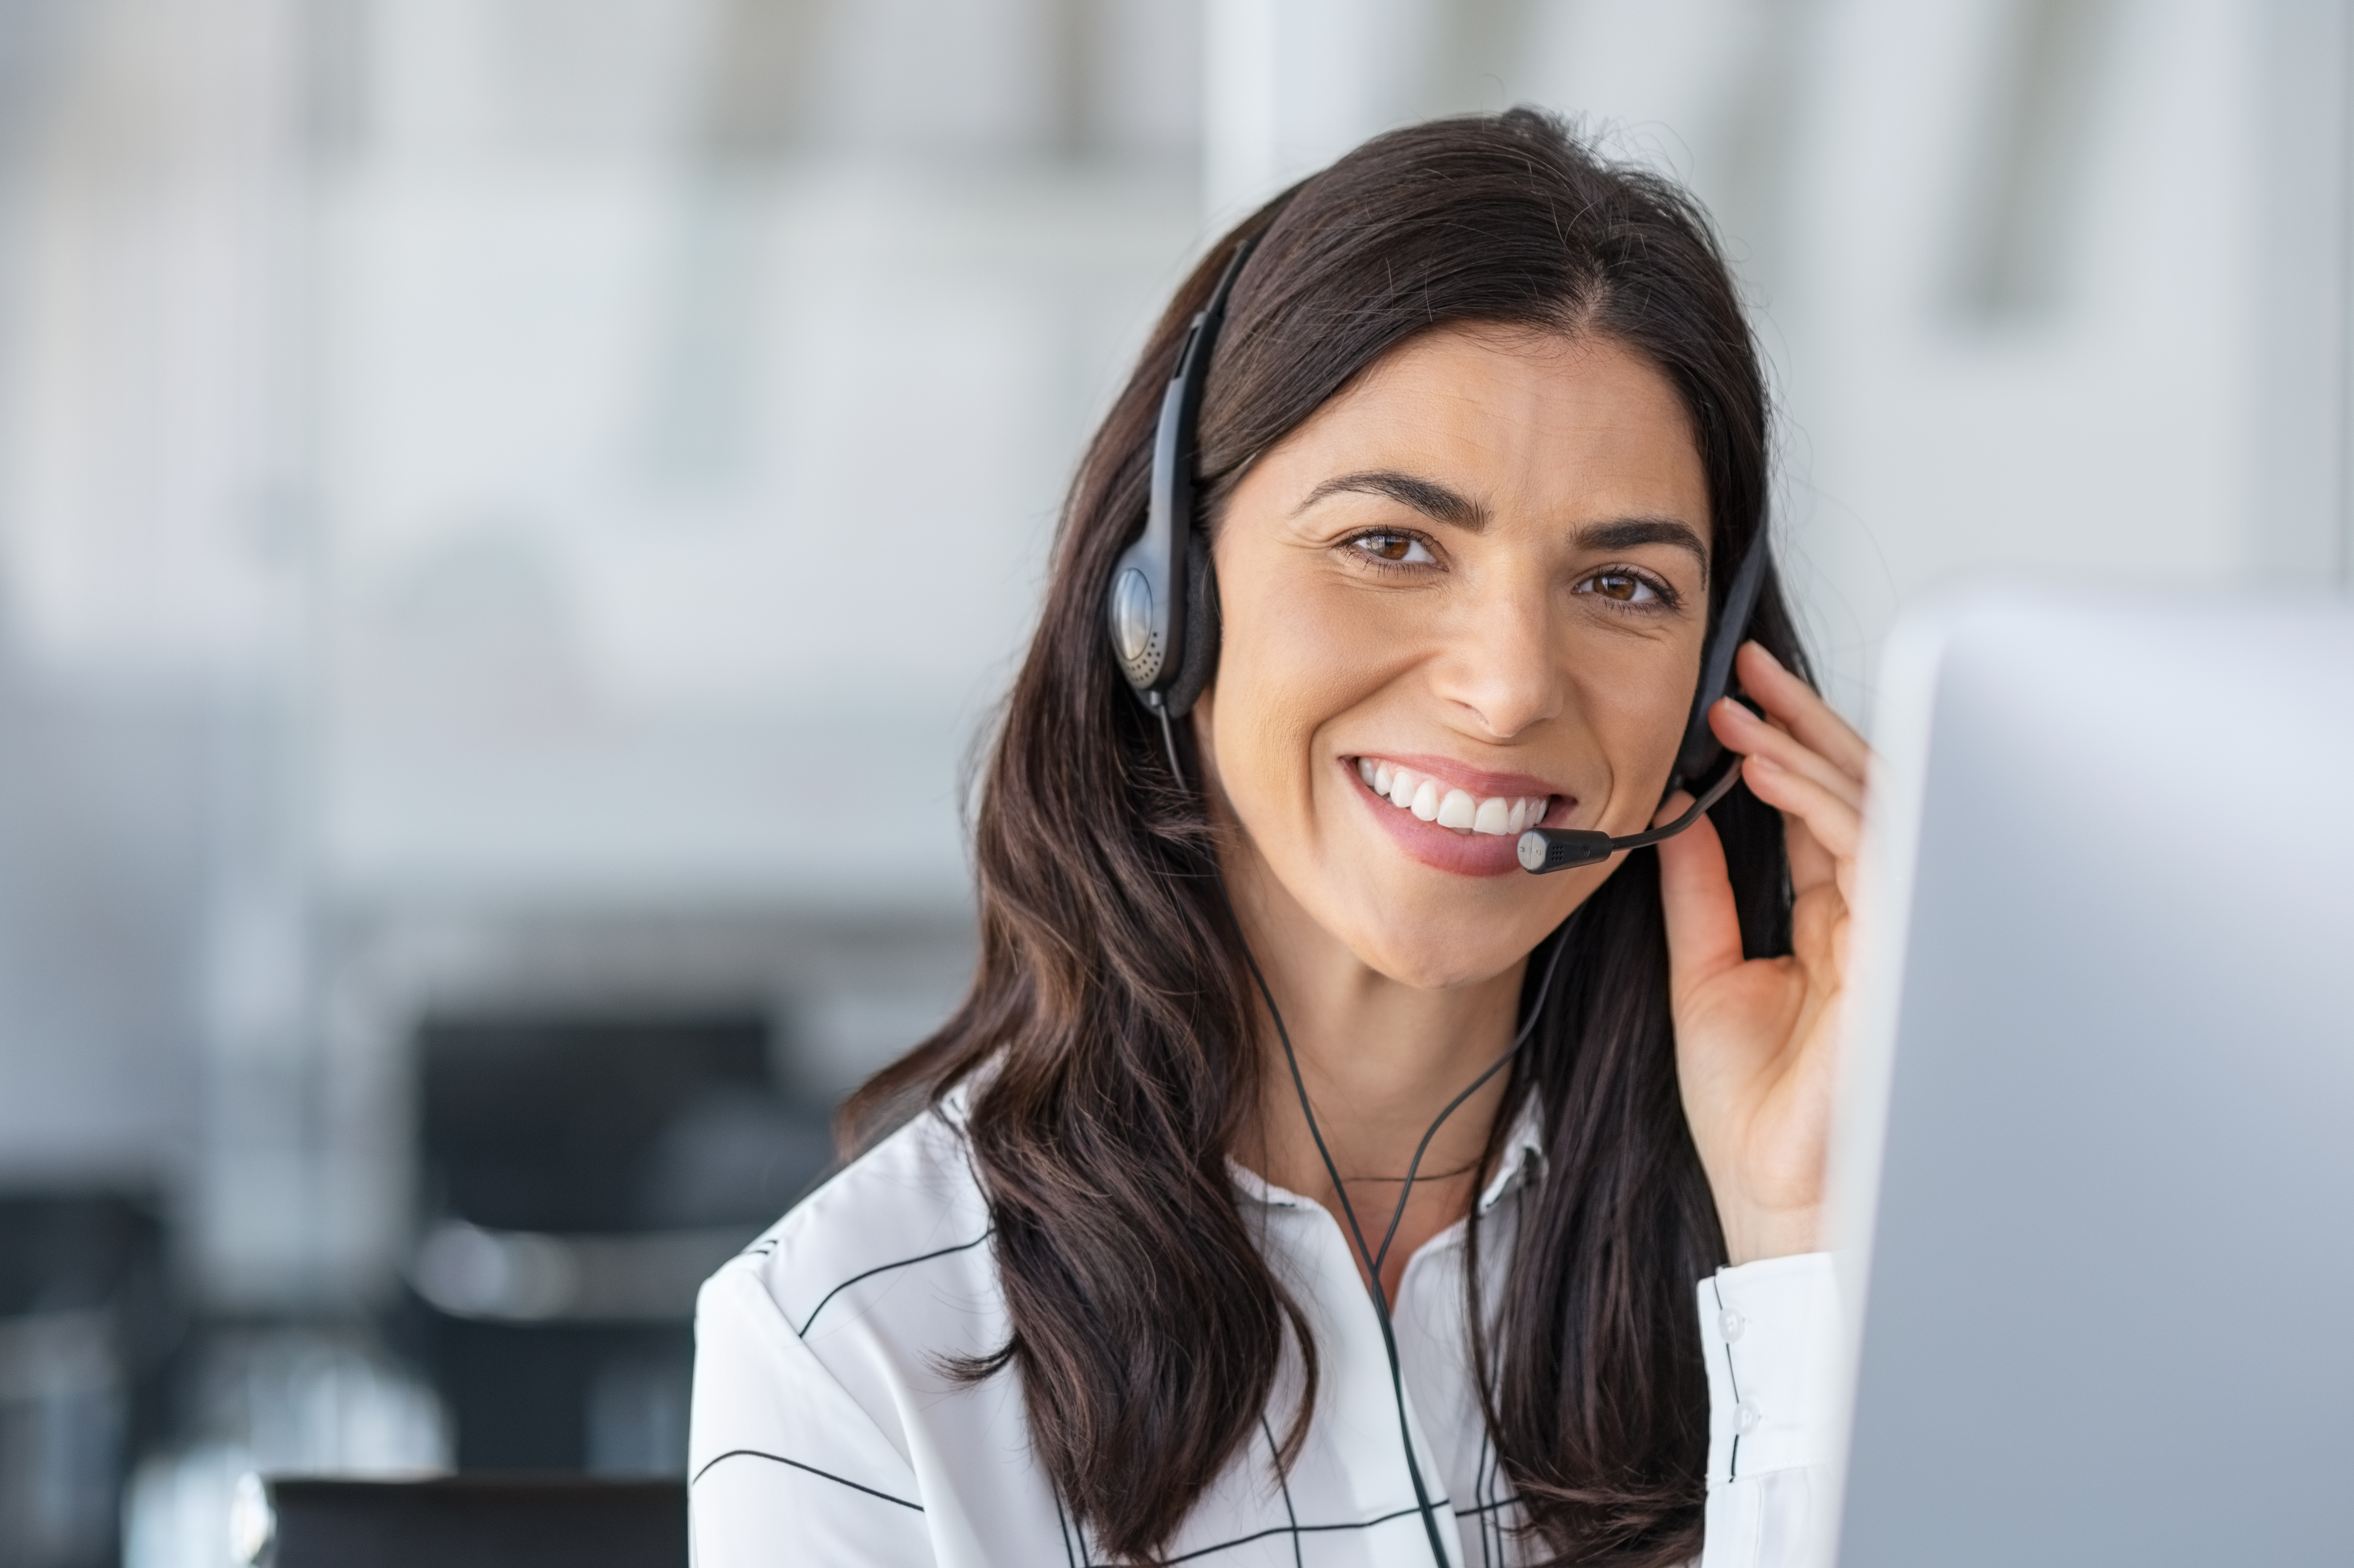 bigstock-Call-center-agent-with-headset-343674517